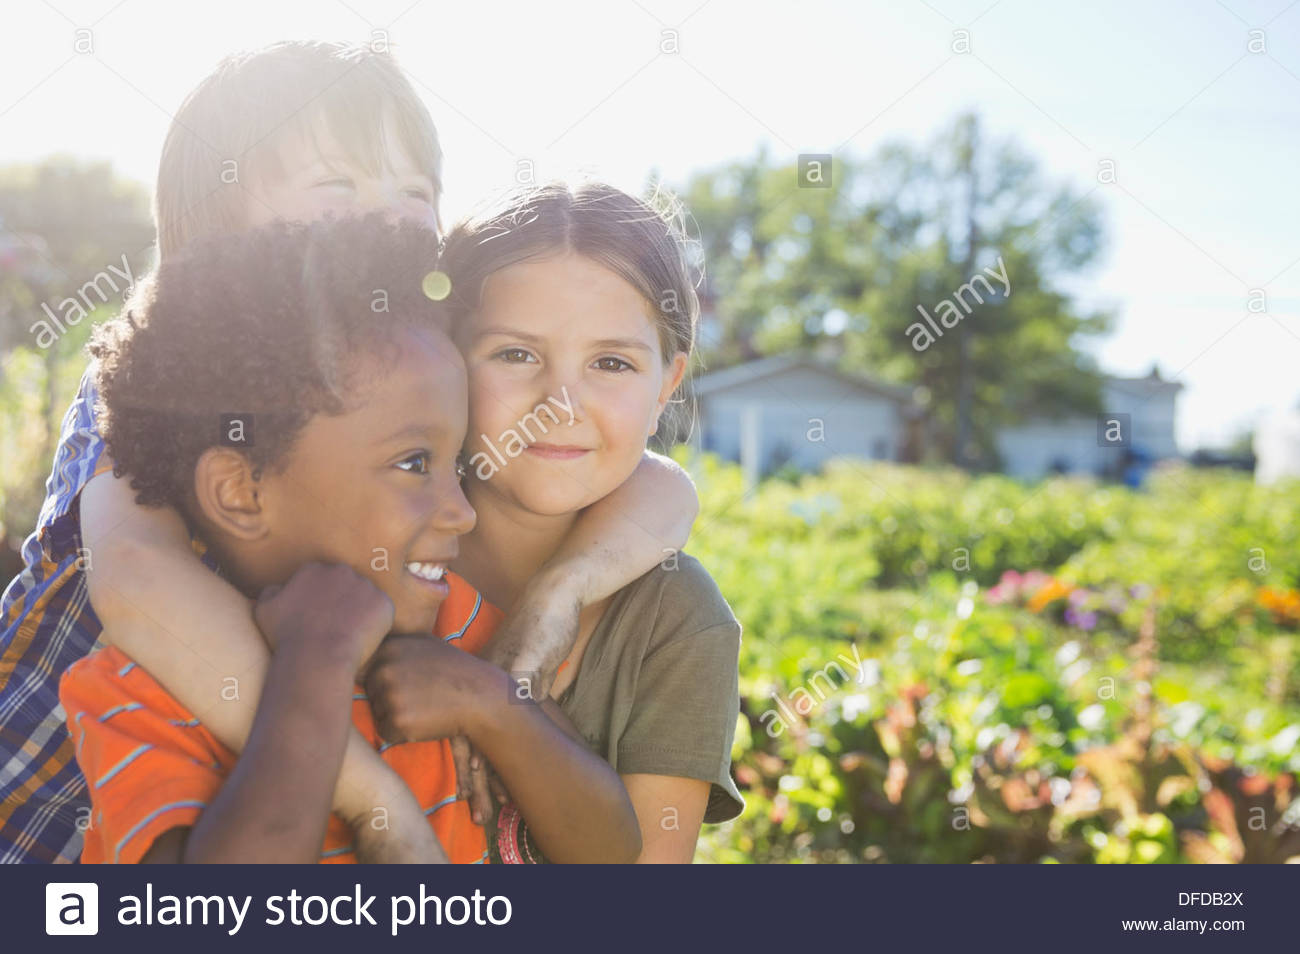 Portrait of cute girl with friends in community garden - Stock Image